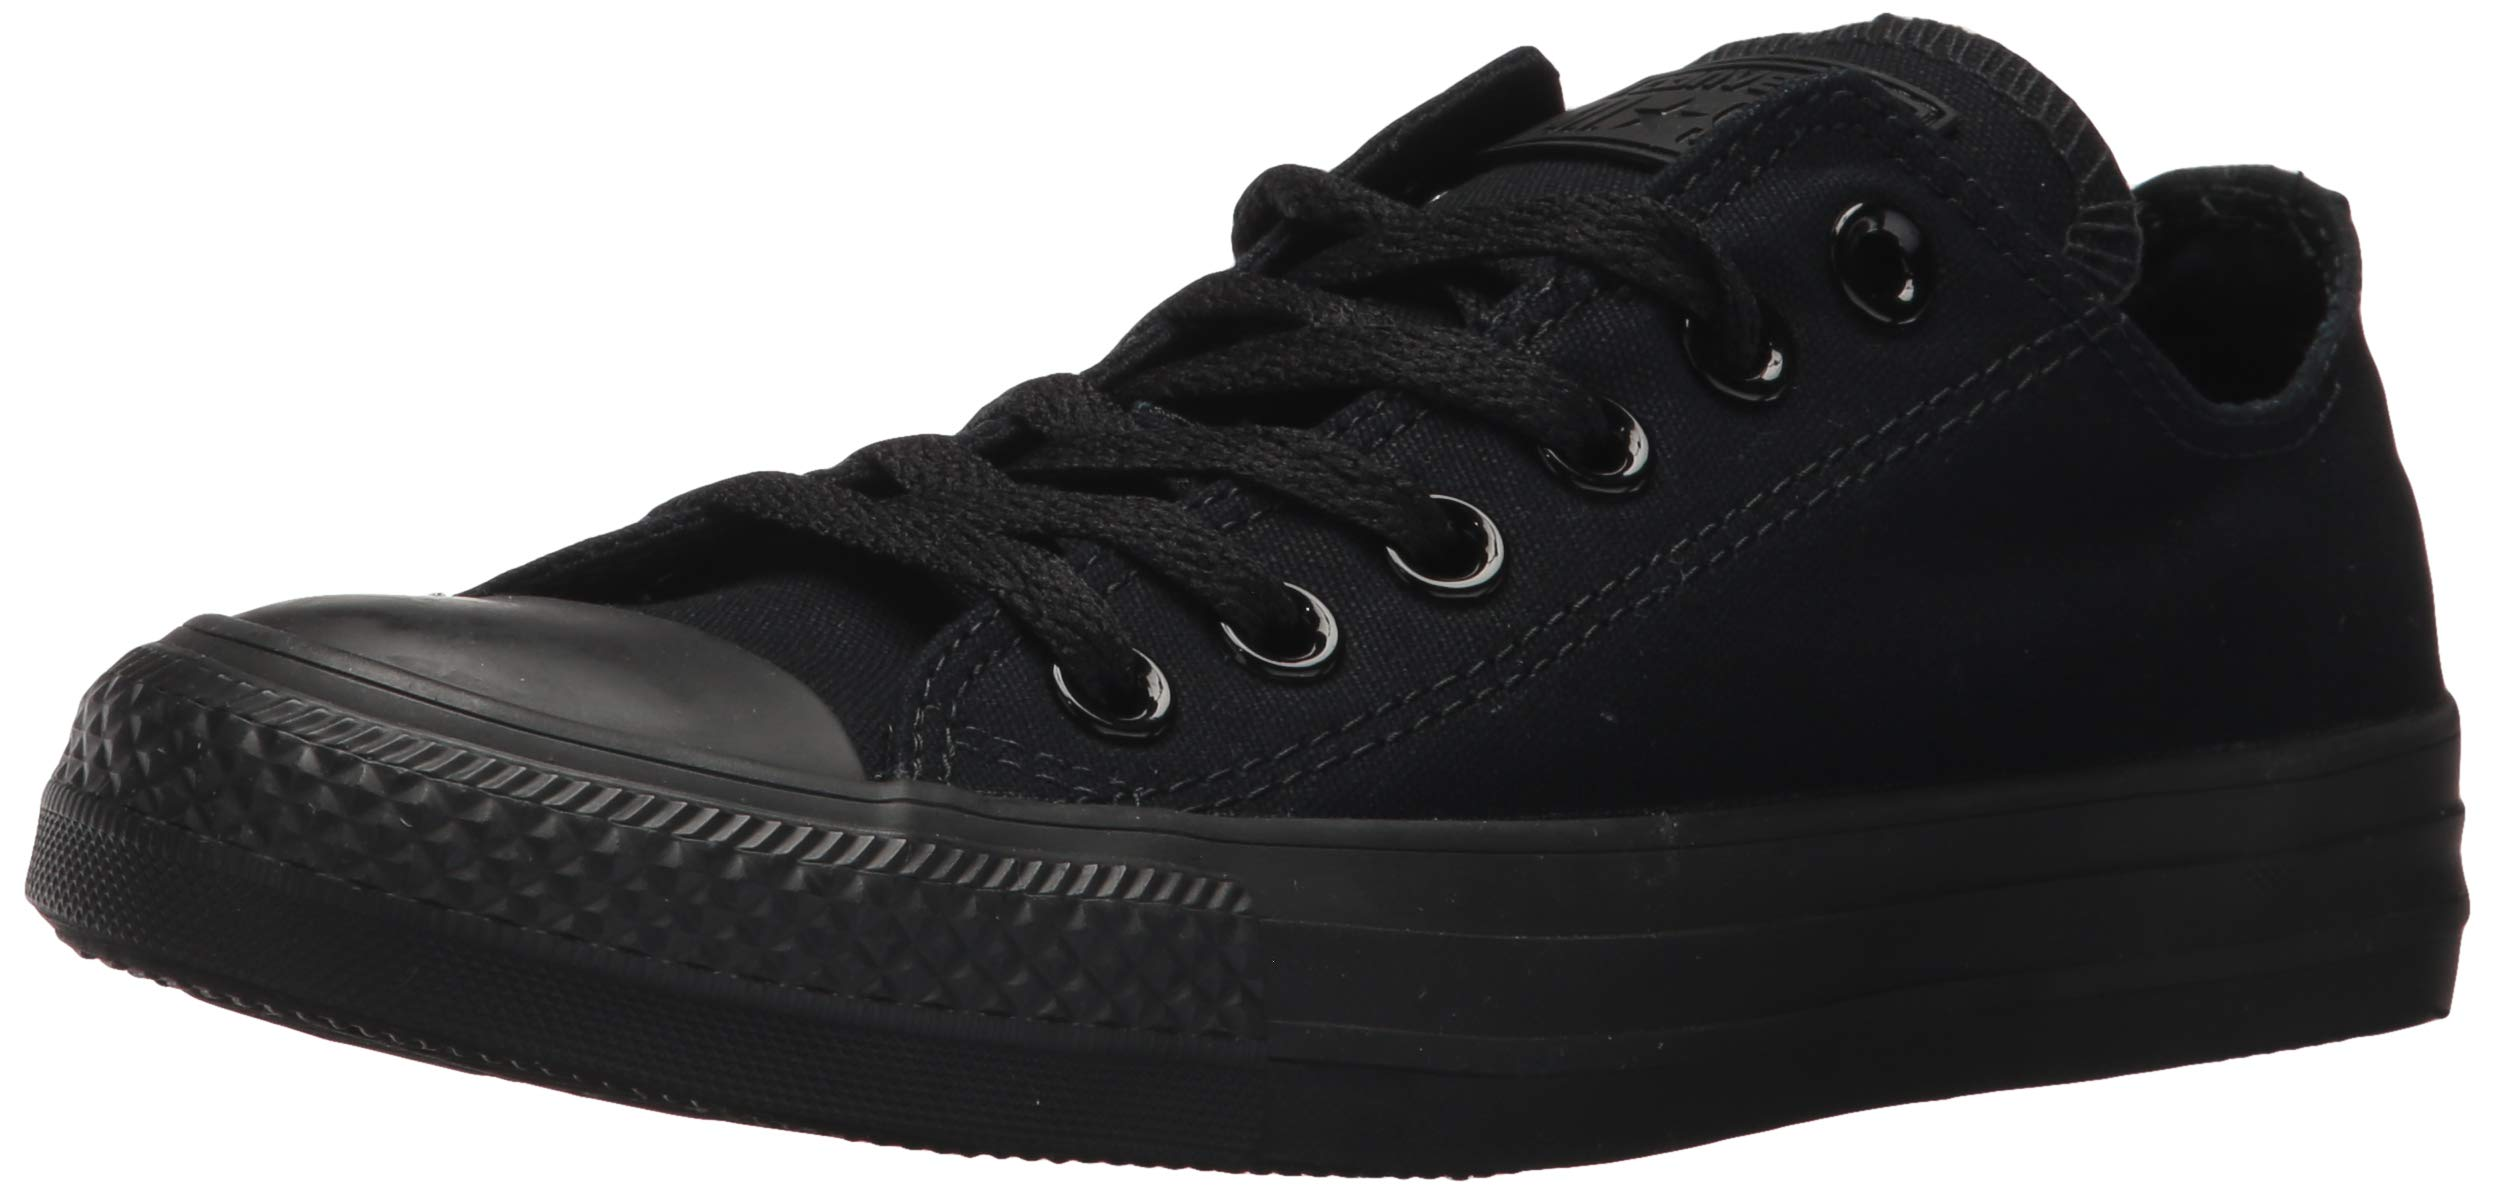 Converse Unisex Chuck Taylor All Star Low Top Black Monochrome Sneakers - 10.5 D(M) US